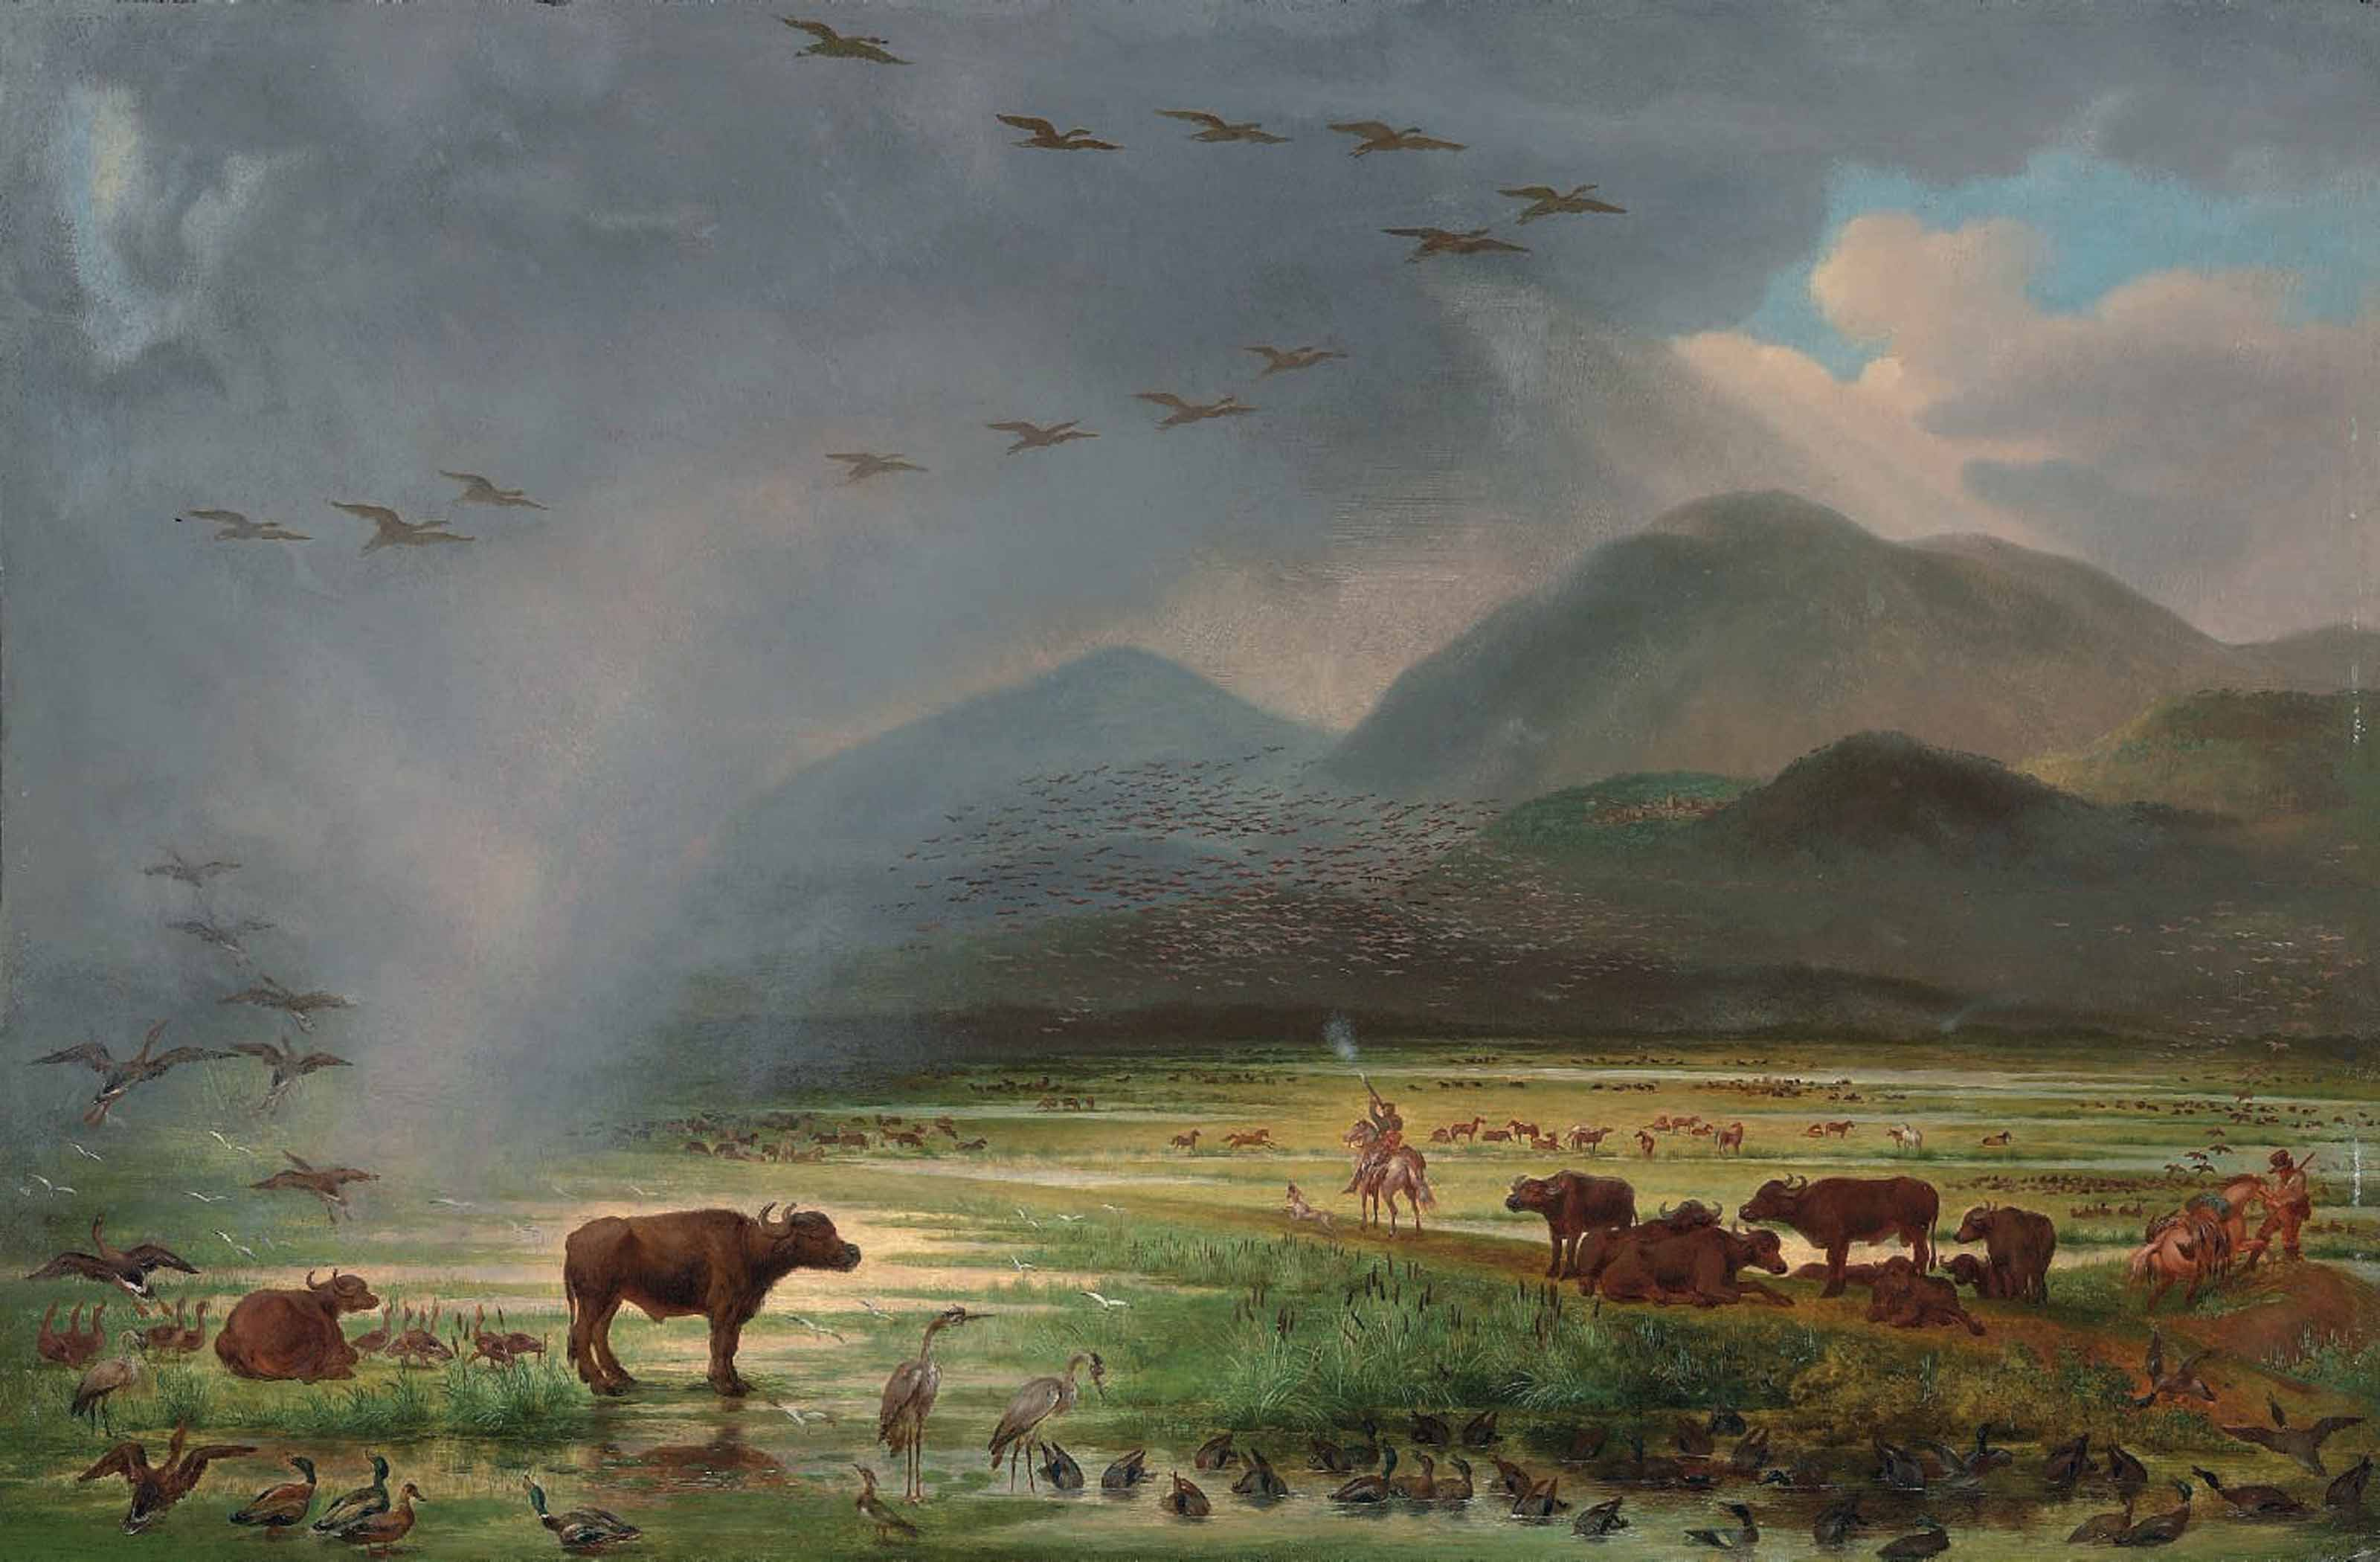 Attributed to George Catlin (1